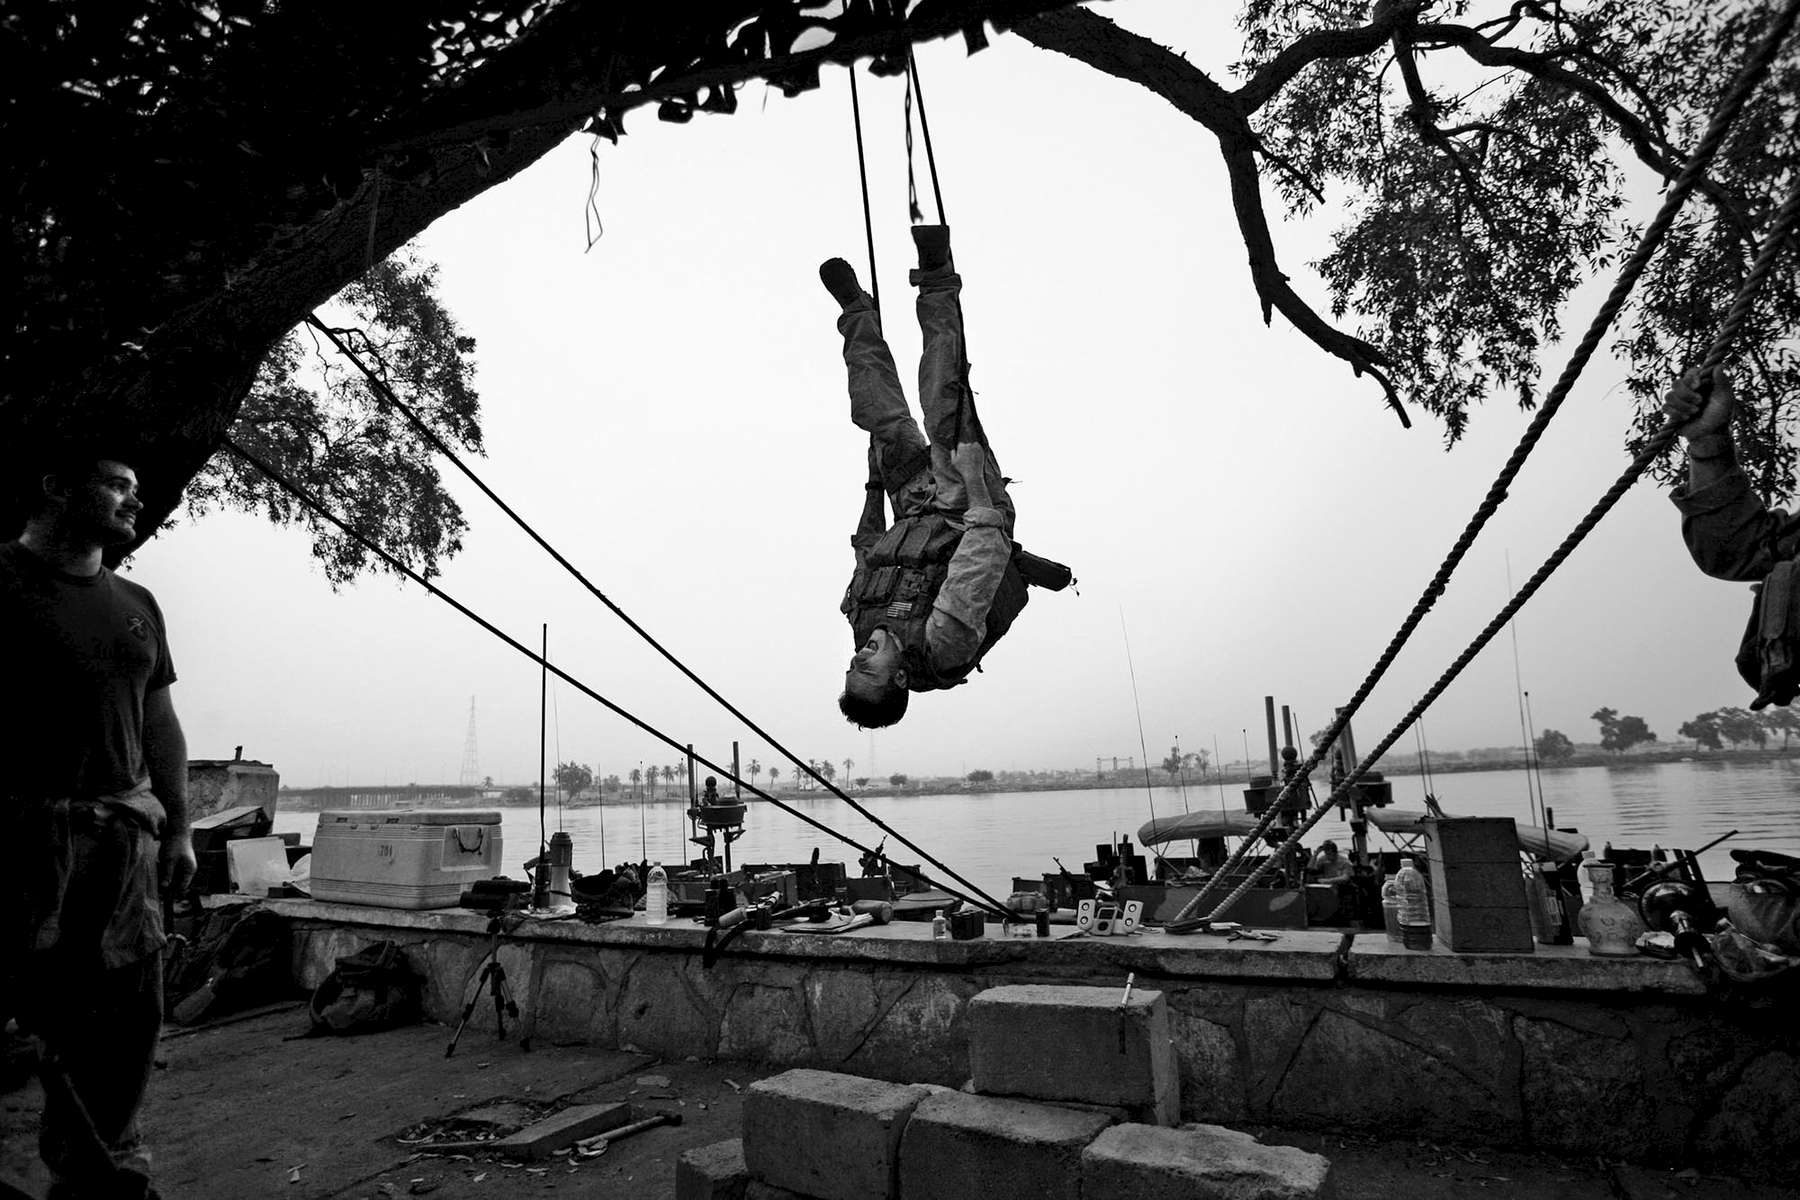 There's more time to fill these days as the number of missions and personnel decrease - here Sid Pollock, 20, of Norfolk, kills time by trying to see if he can hold himself upside down on a rope. Pollock is a seaman with Navy's Riverine Squadron One.